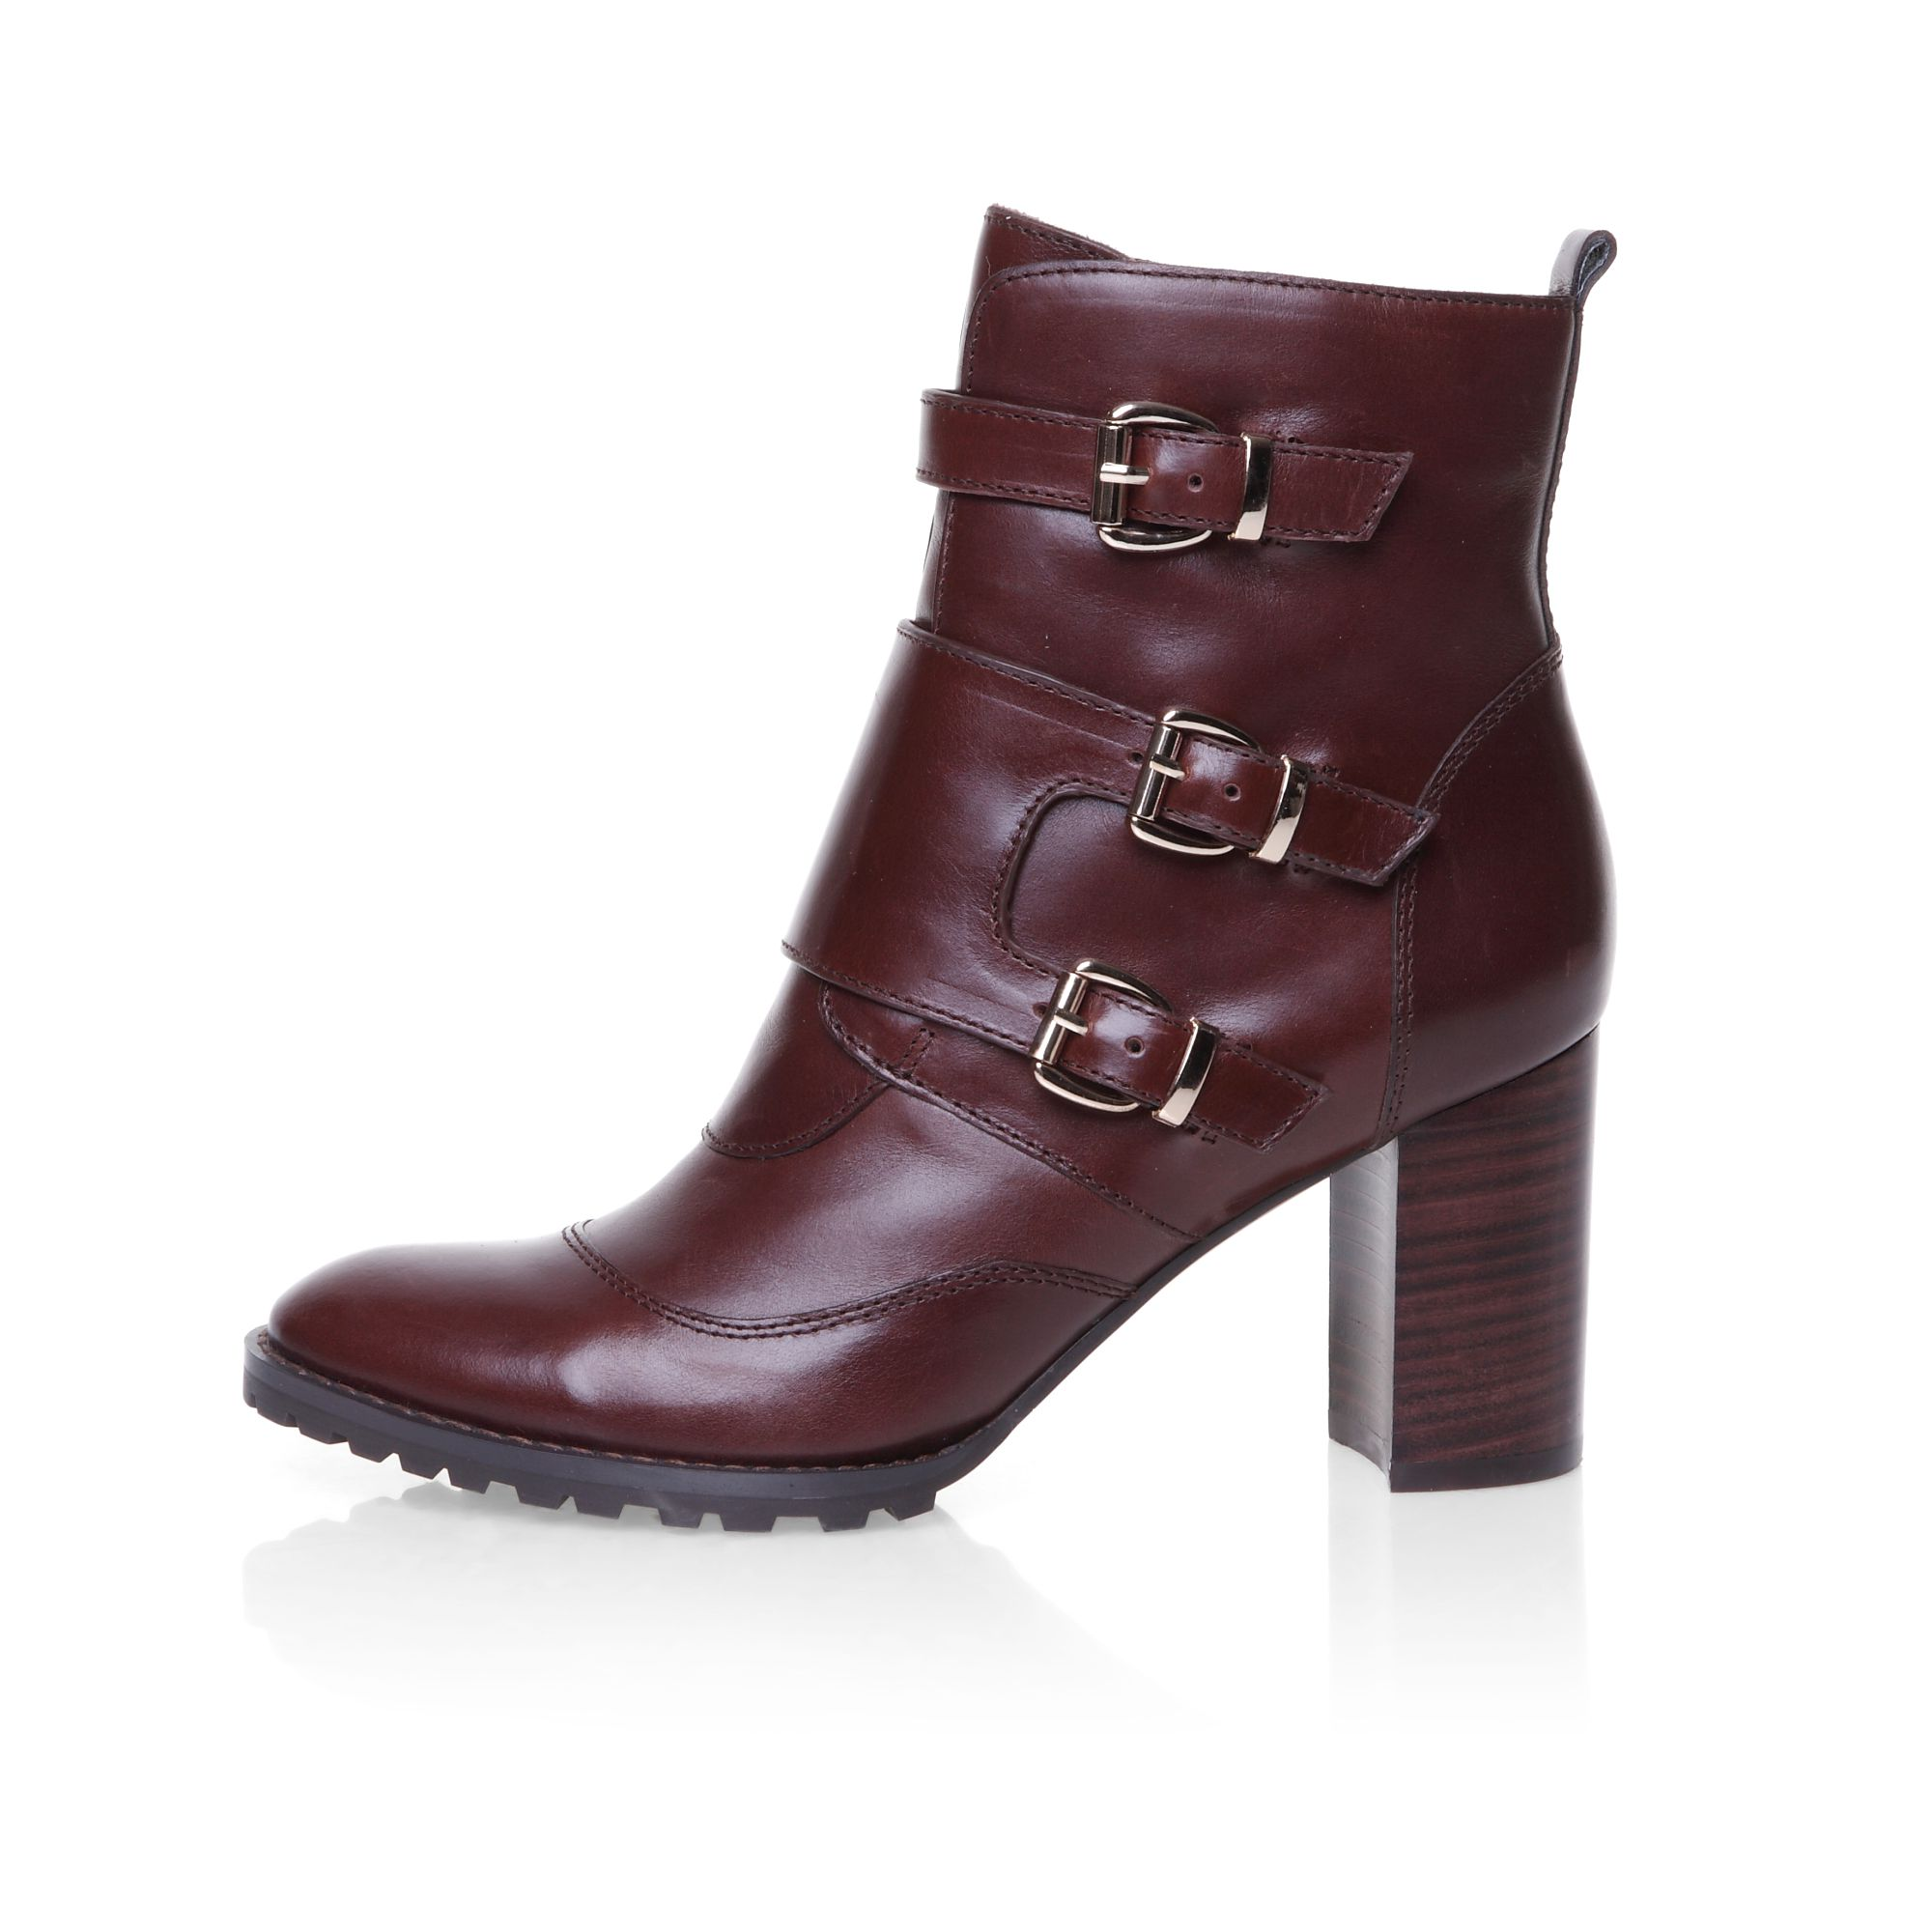 Buckle detail cleated sole ankle boot